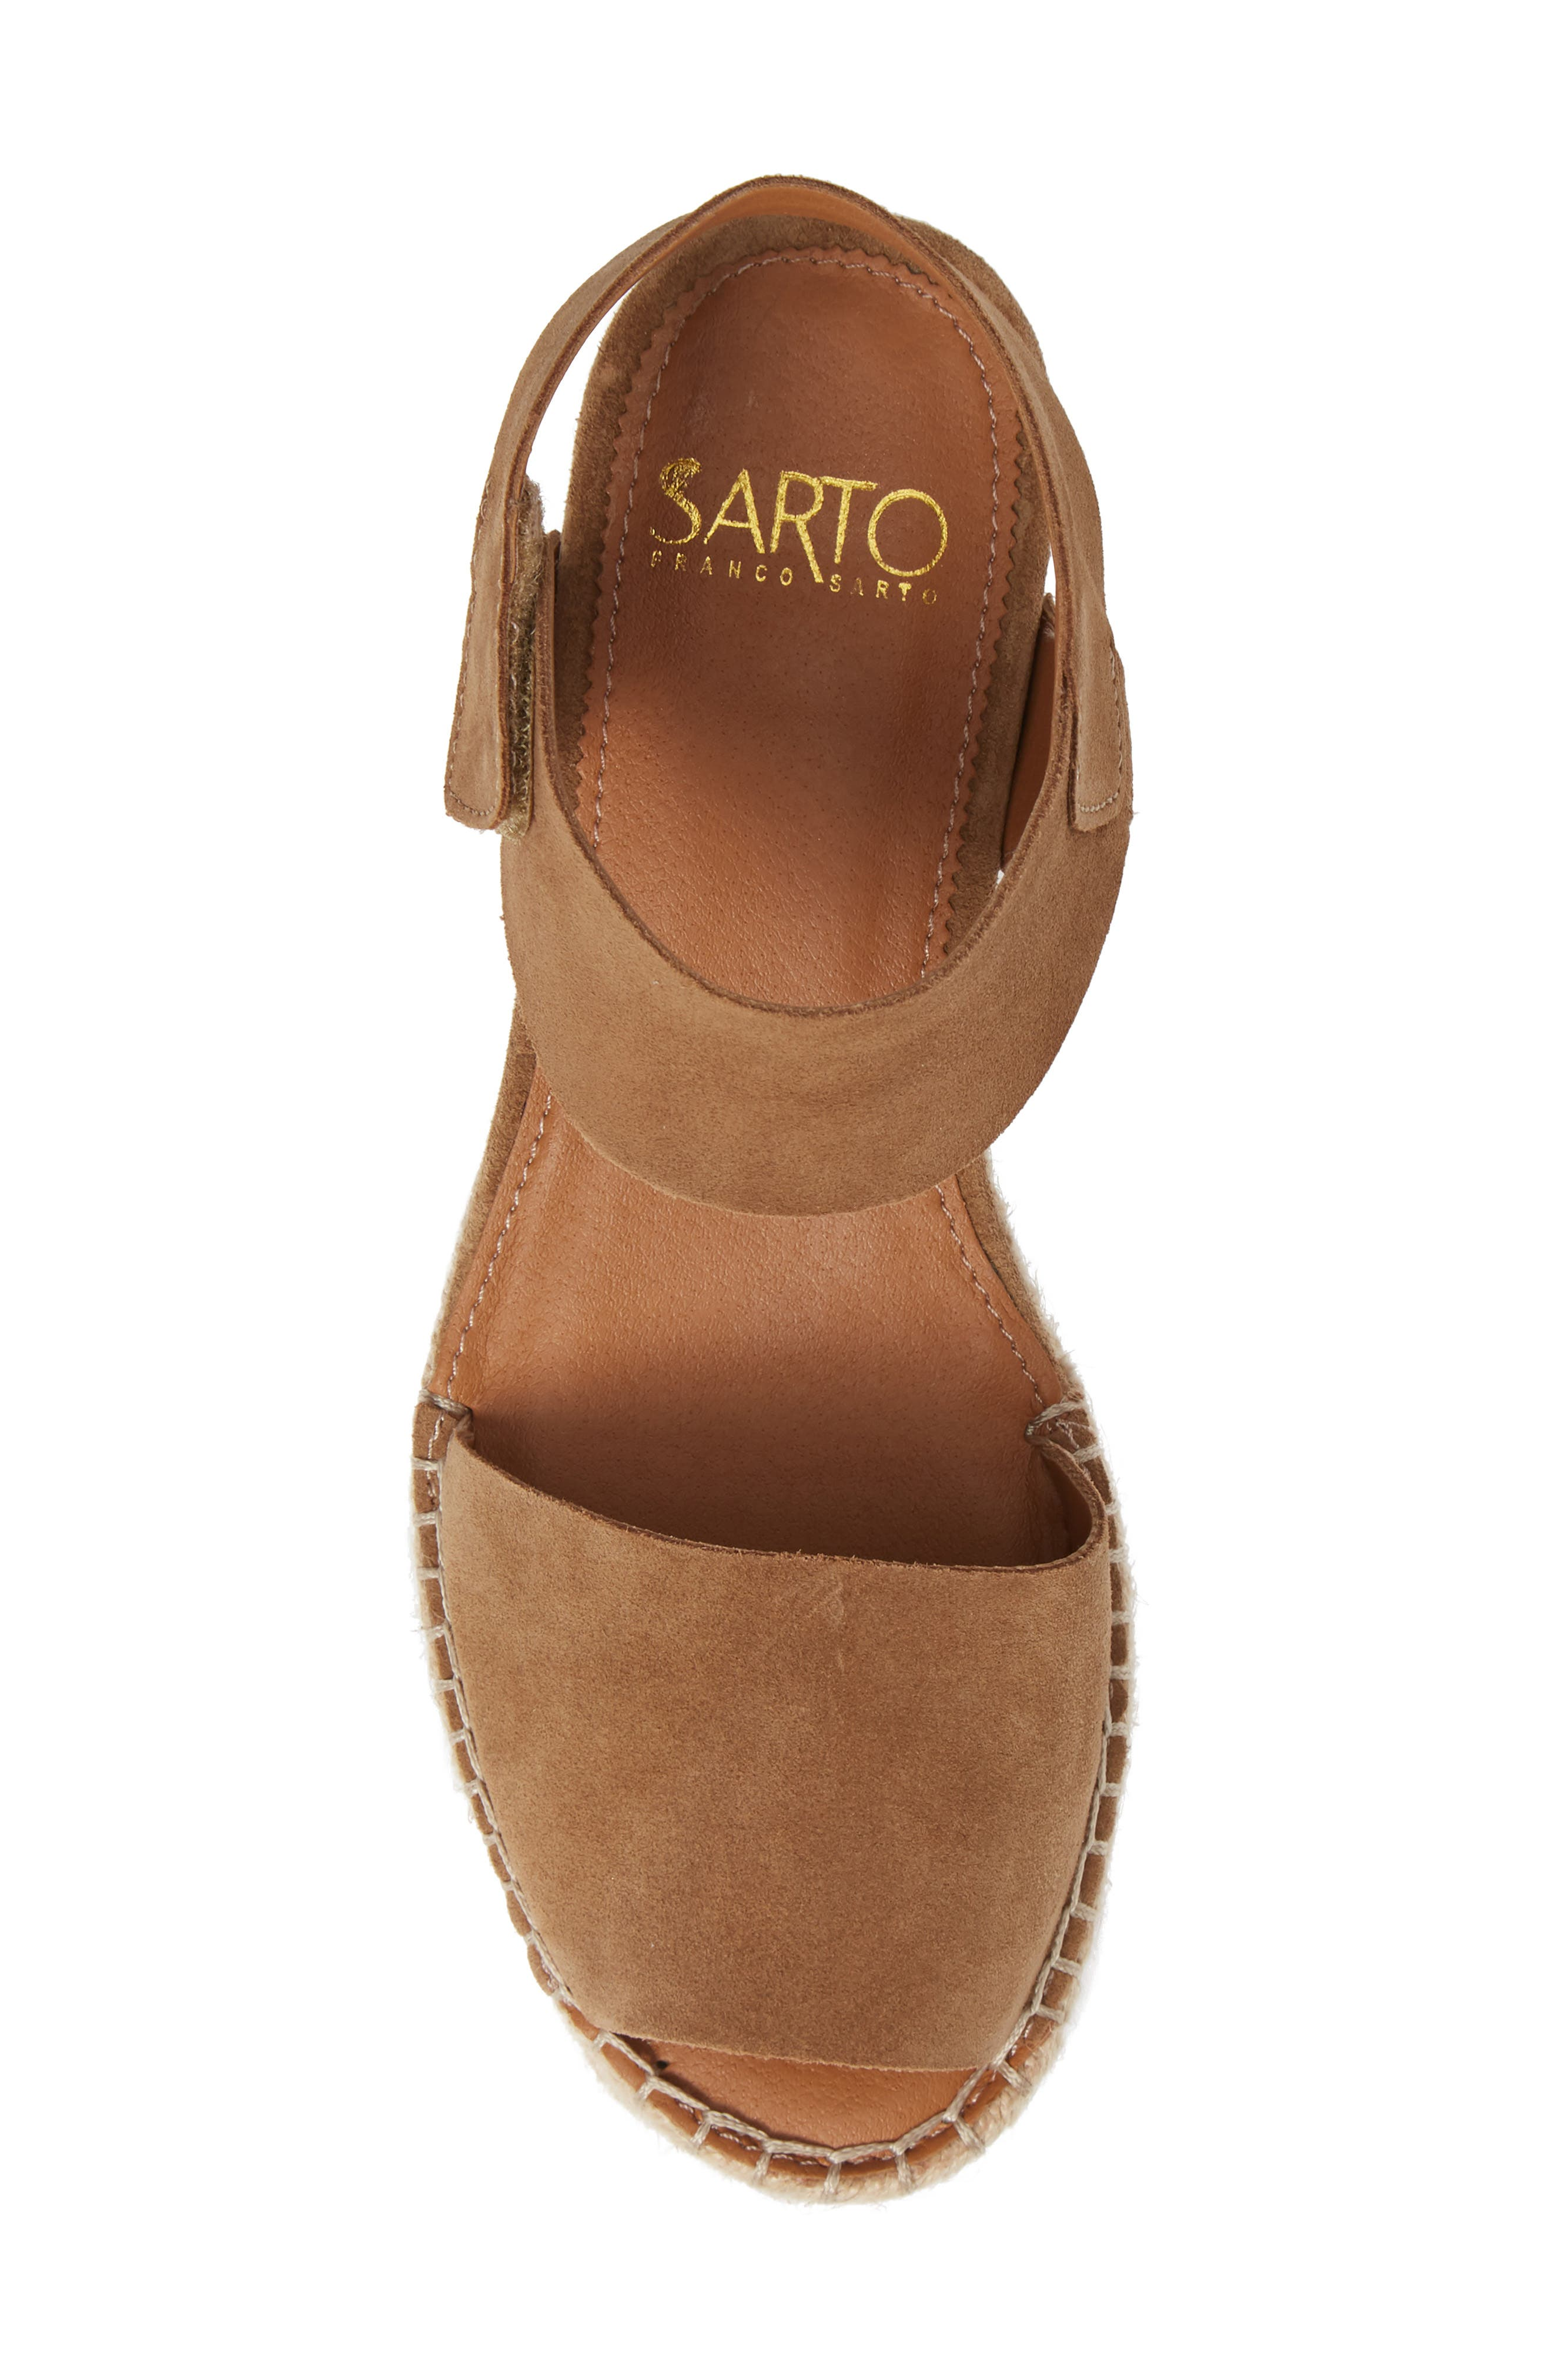 Oak Platform Wedge Espadrille,                             Alternate thumbnail 5, color,                             Toasted Barley Suede